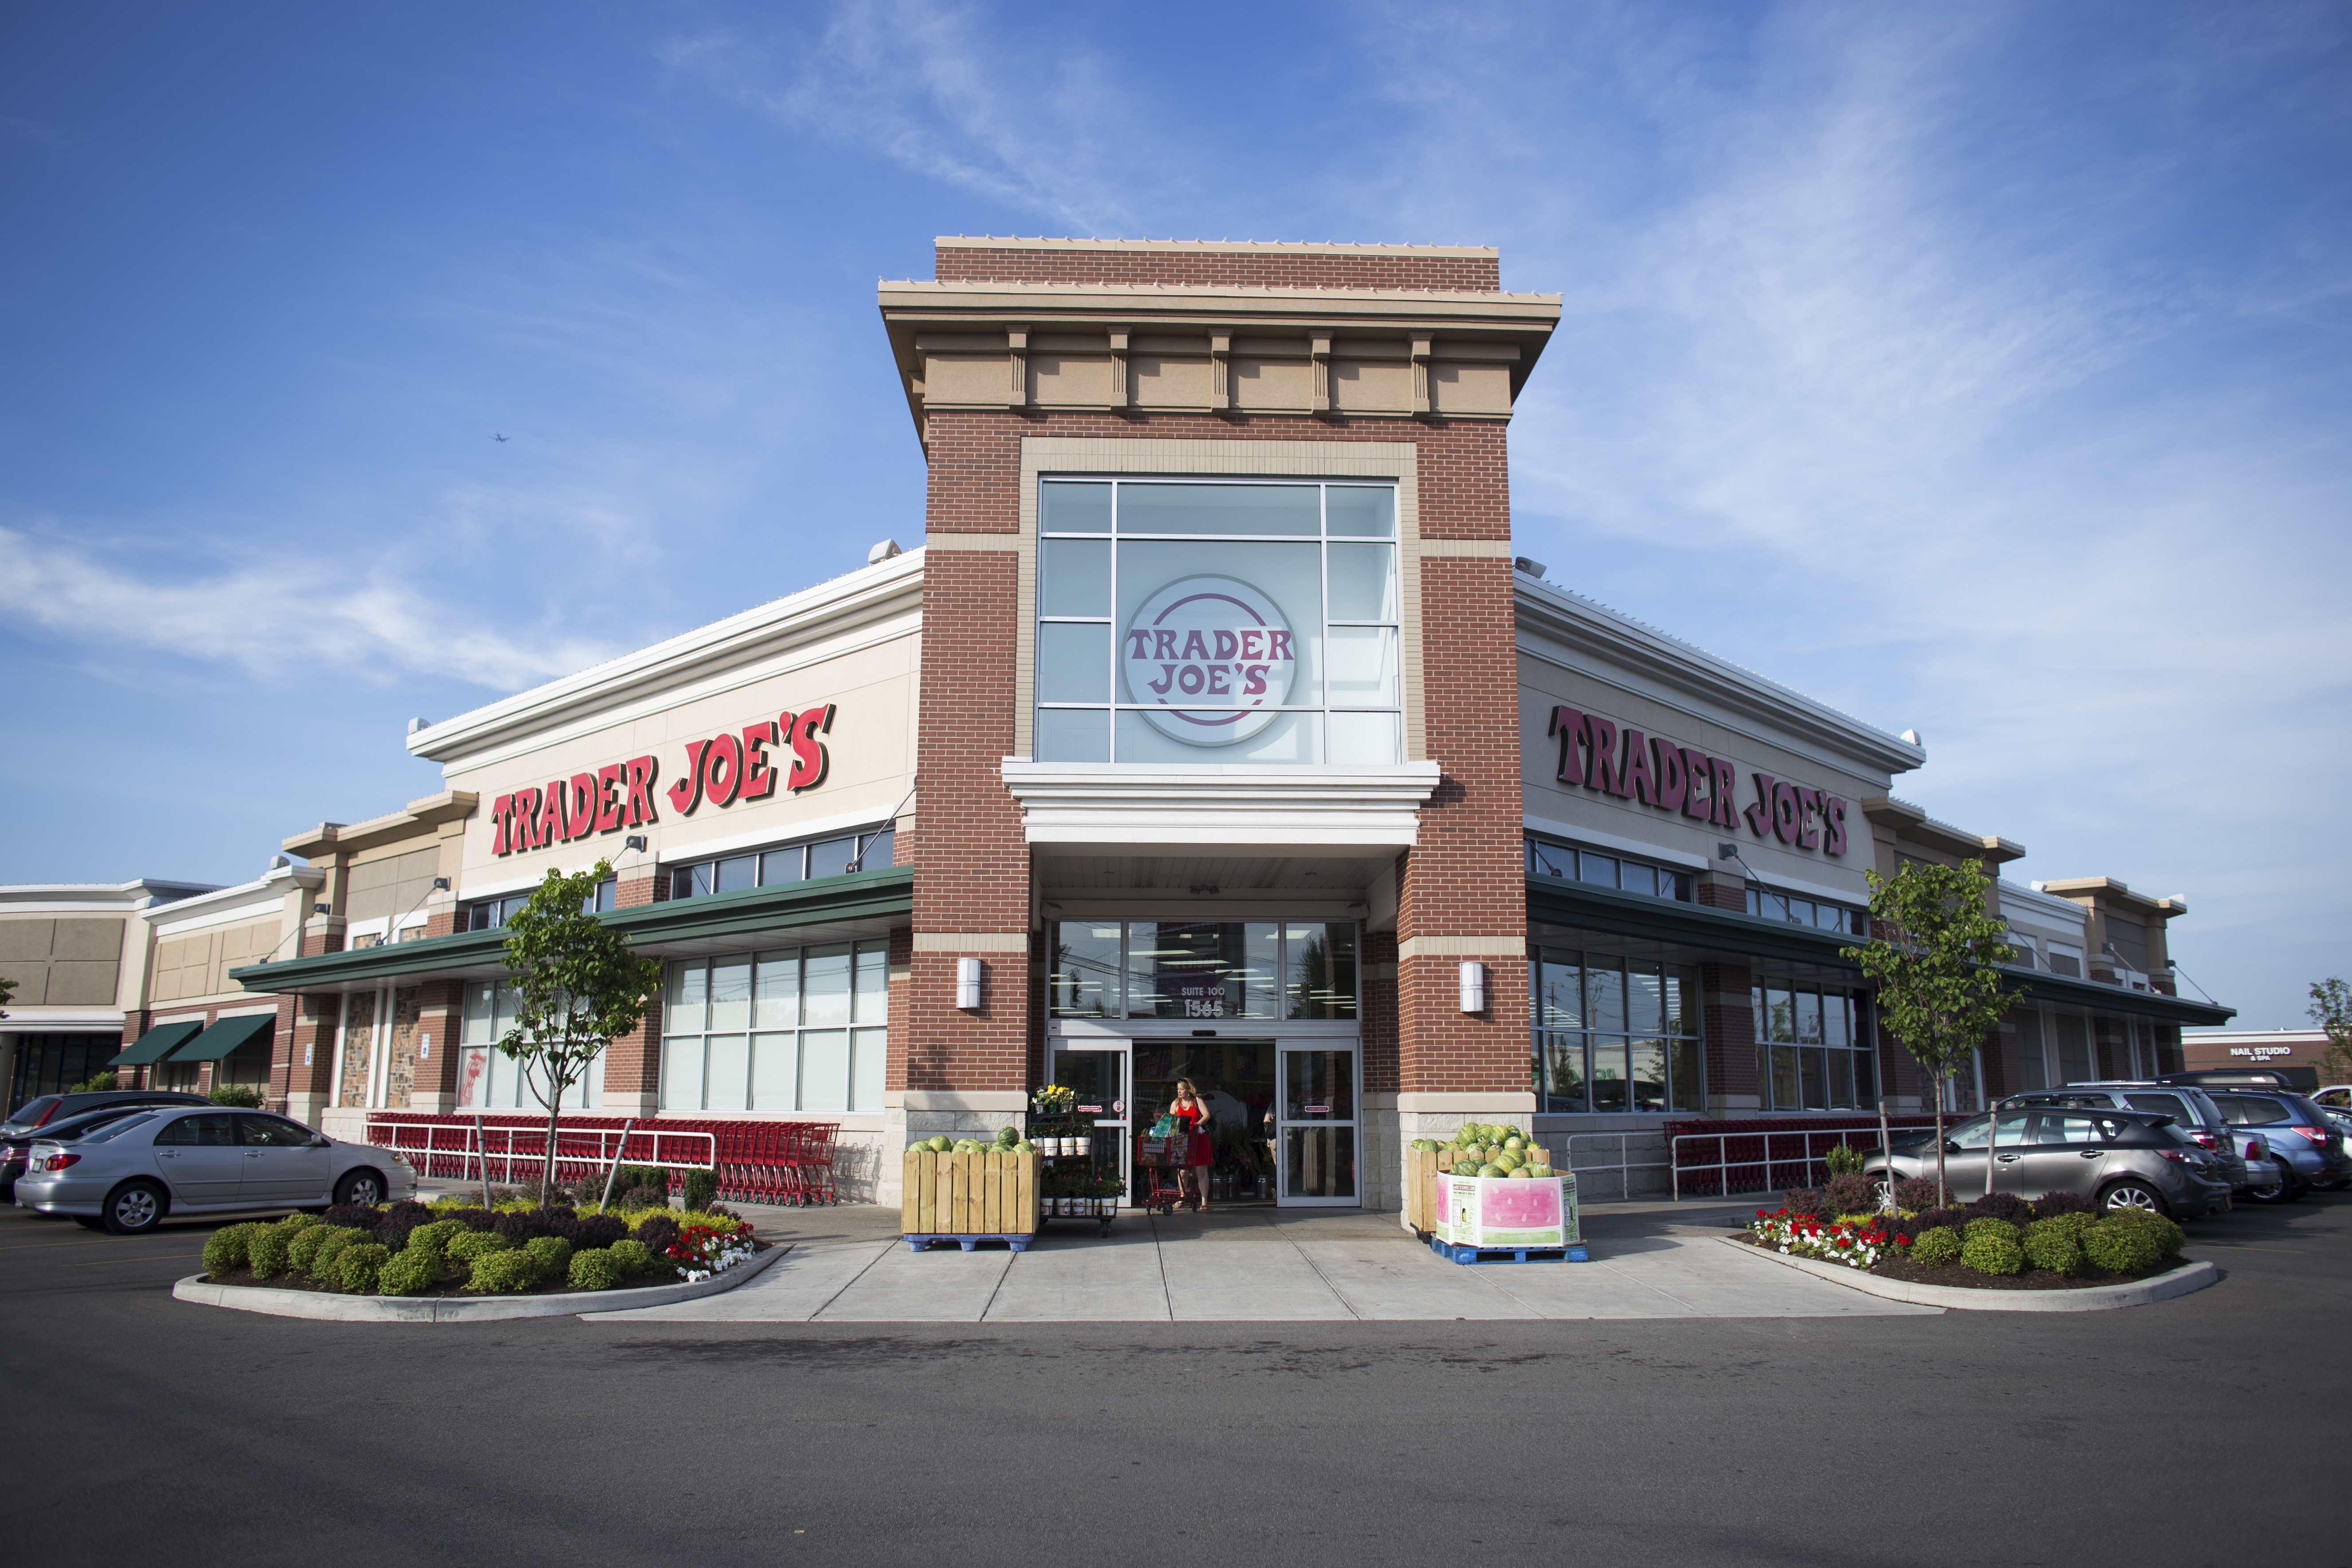 The Ultimate Challenge for Trader Joe's Lovers